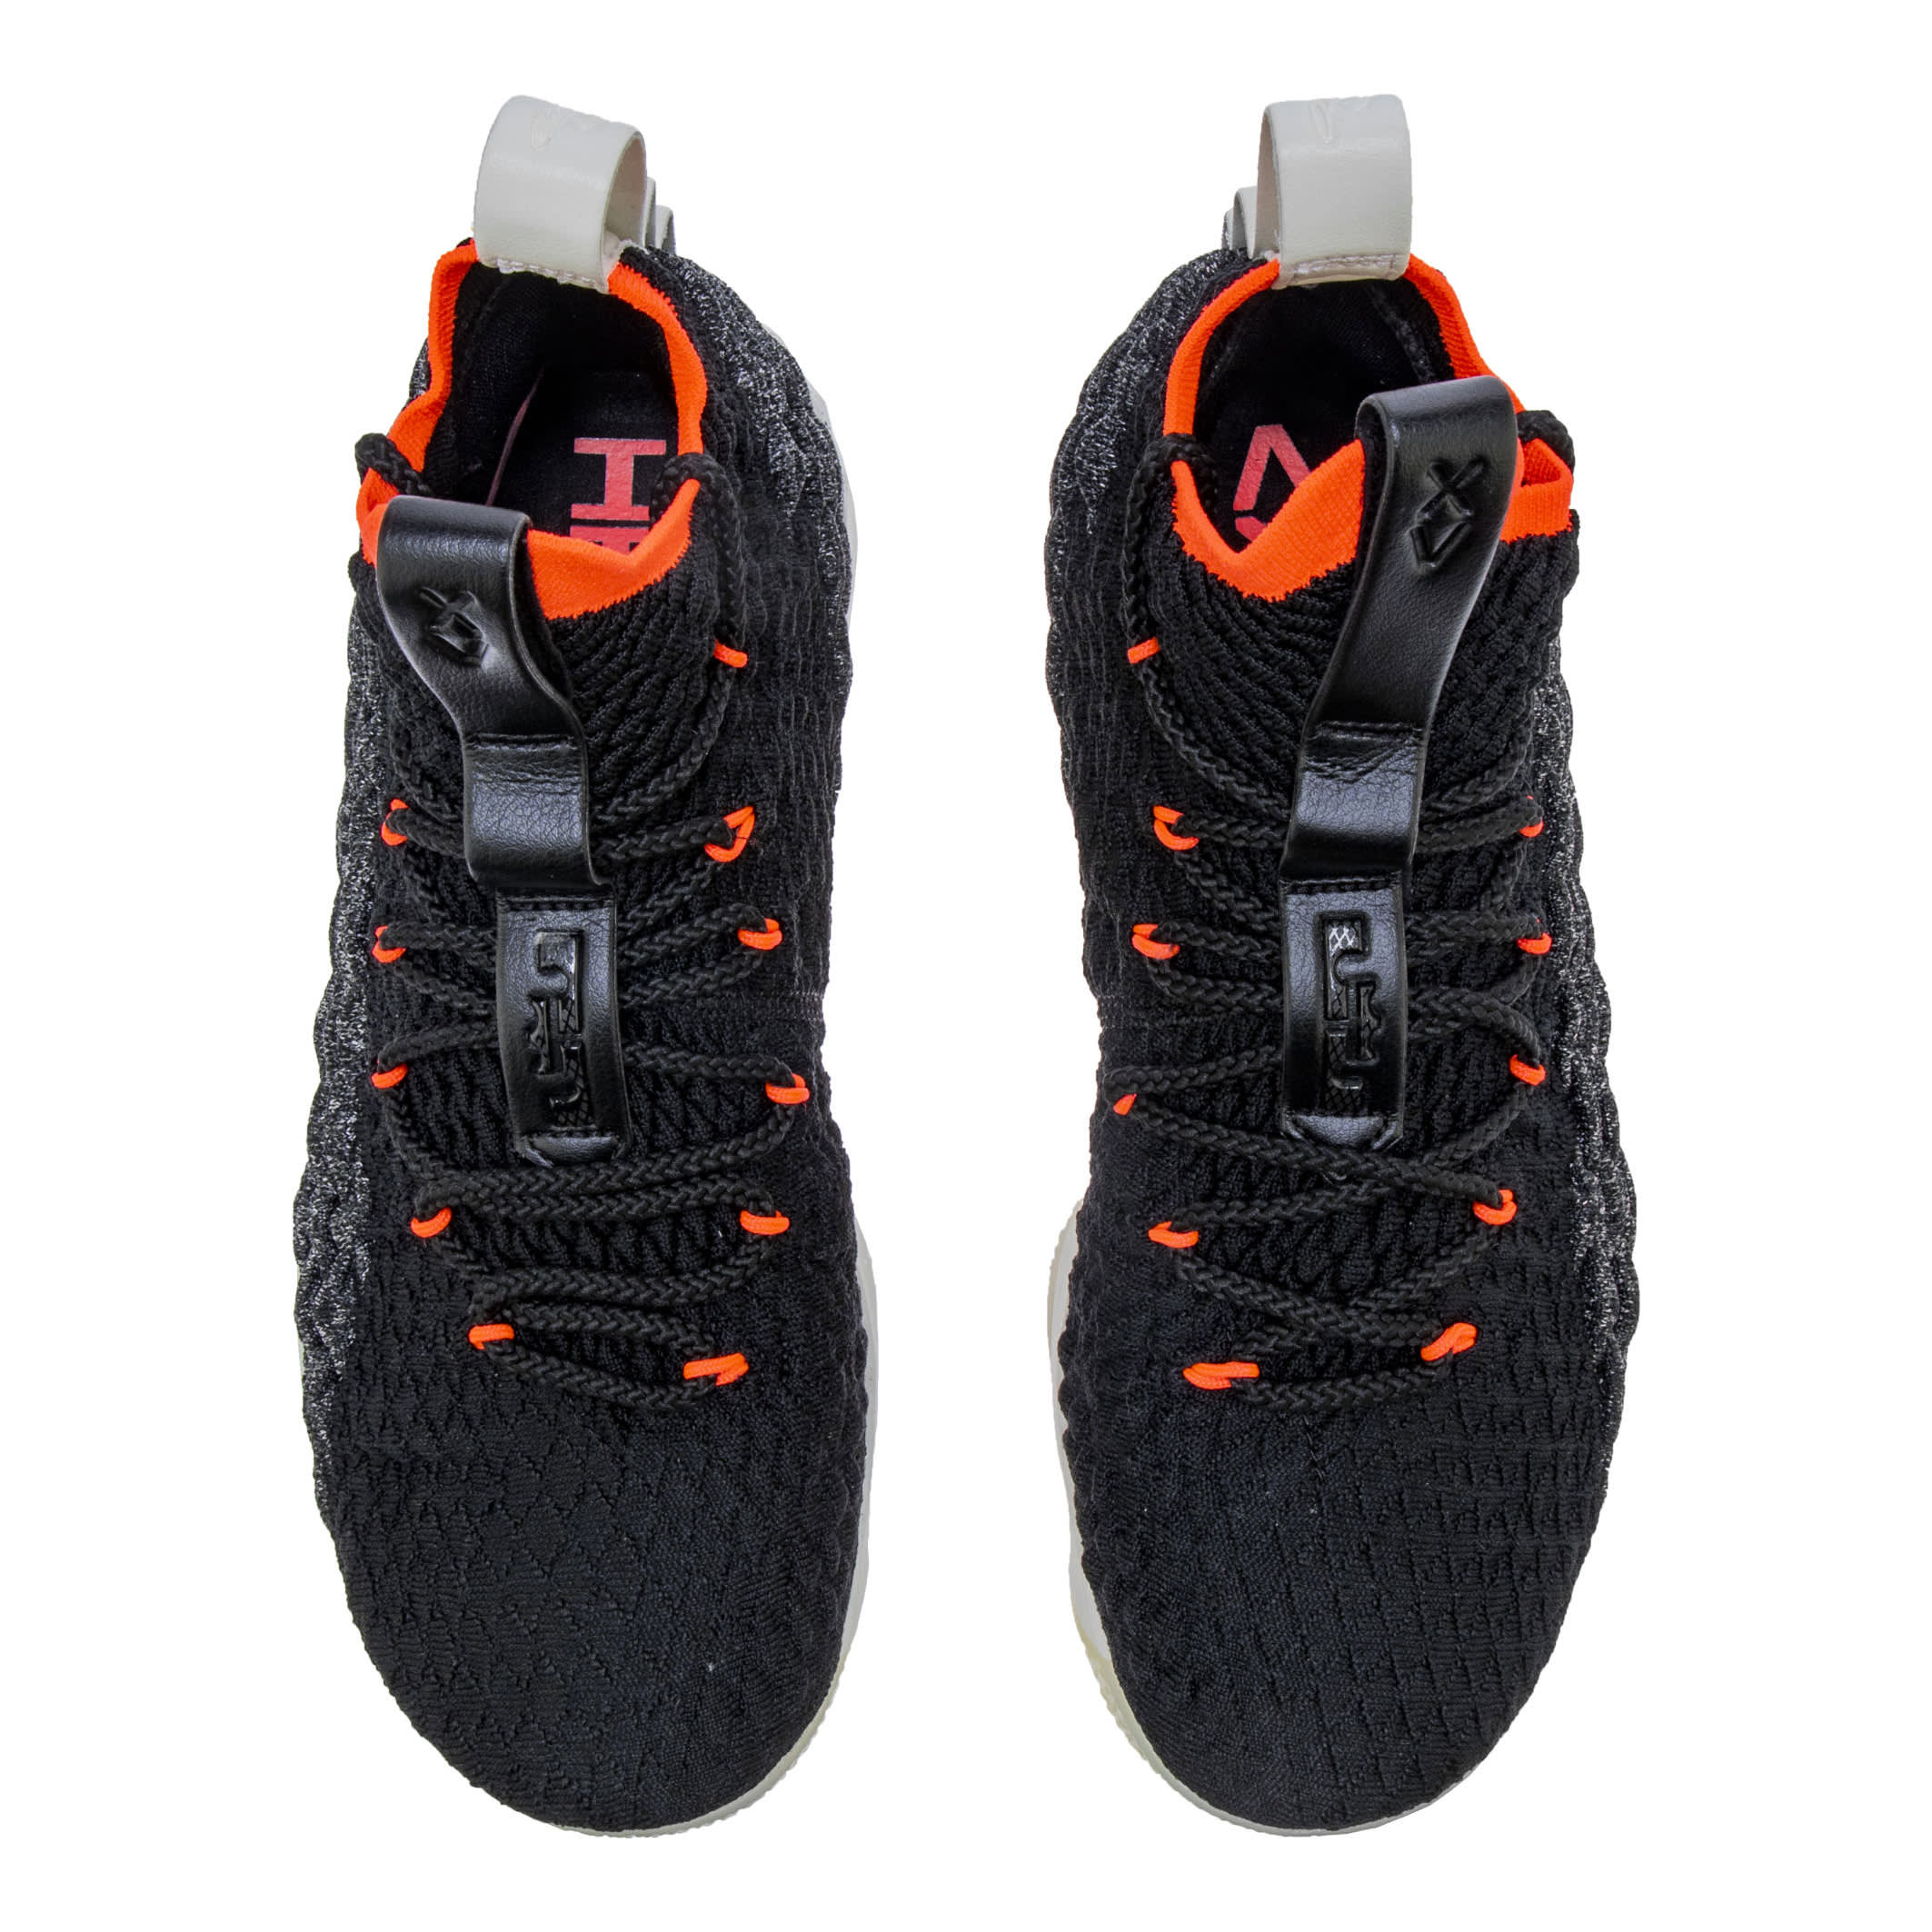 929714490f05 Nike LeBron 15 Orange Box AR5125 800 Release Details